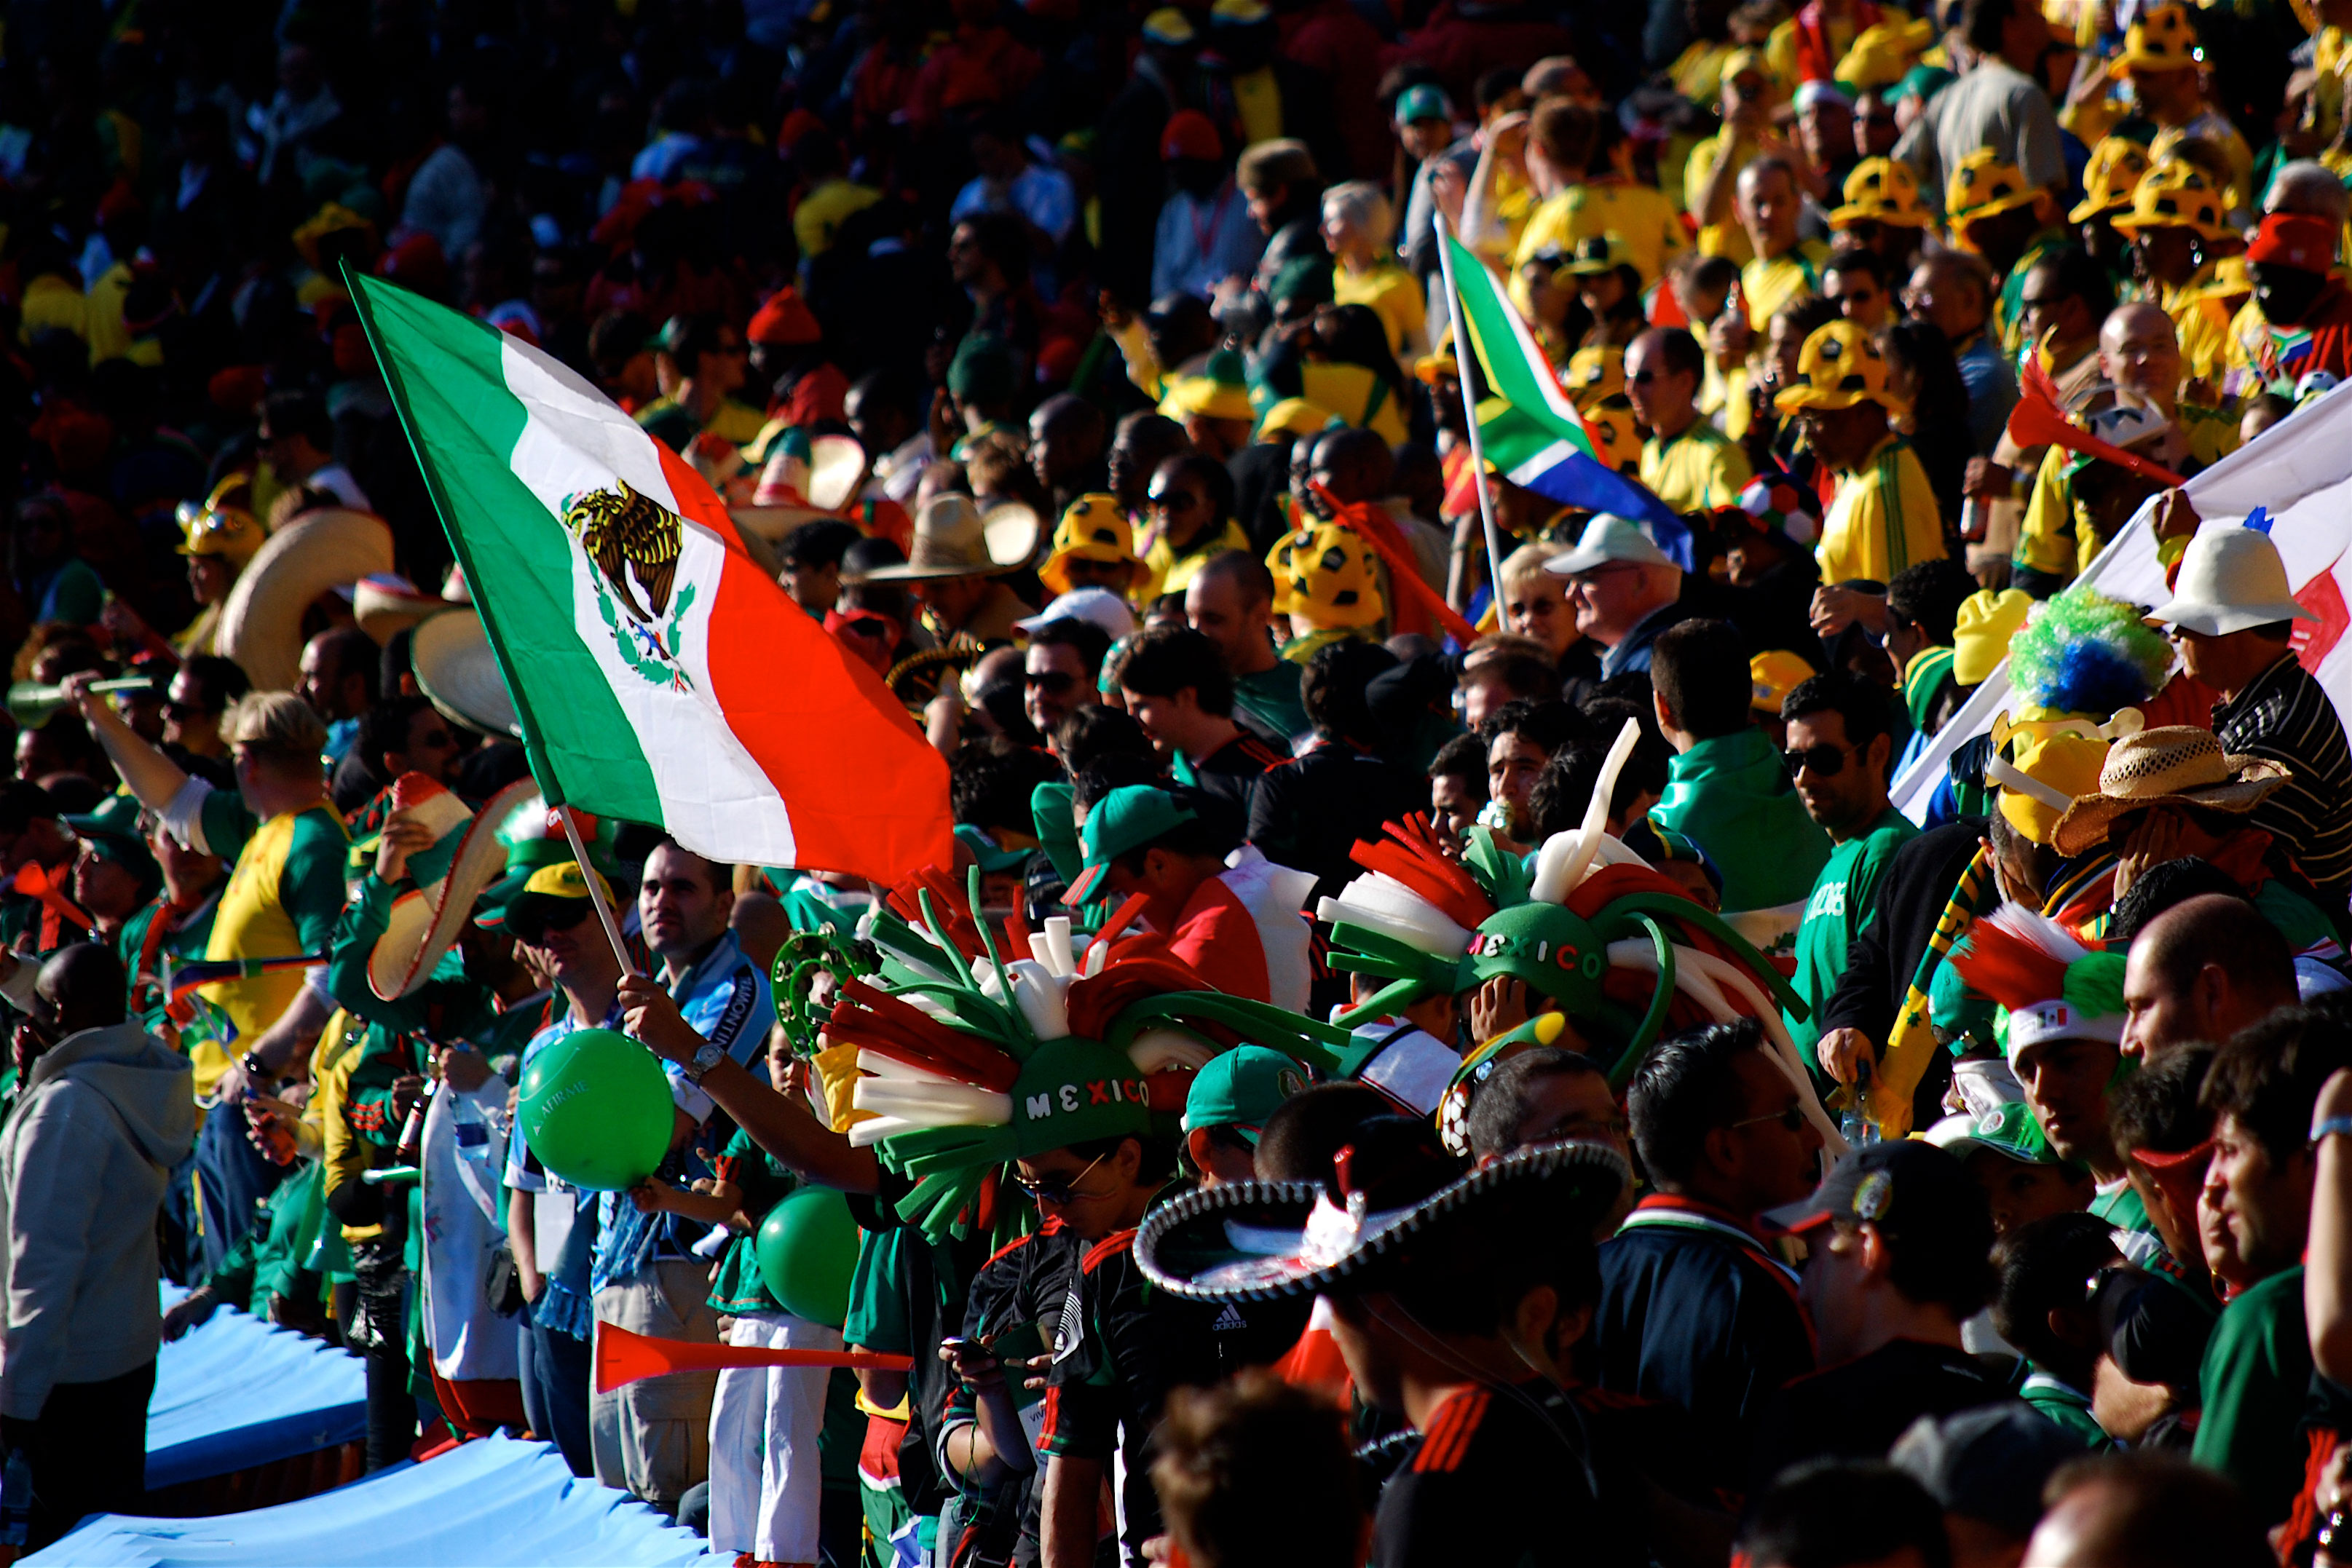 Mexico under FIFA investigation over its fans' homophobic chants